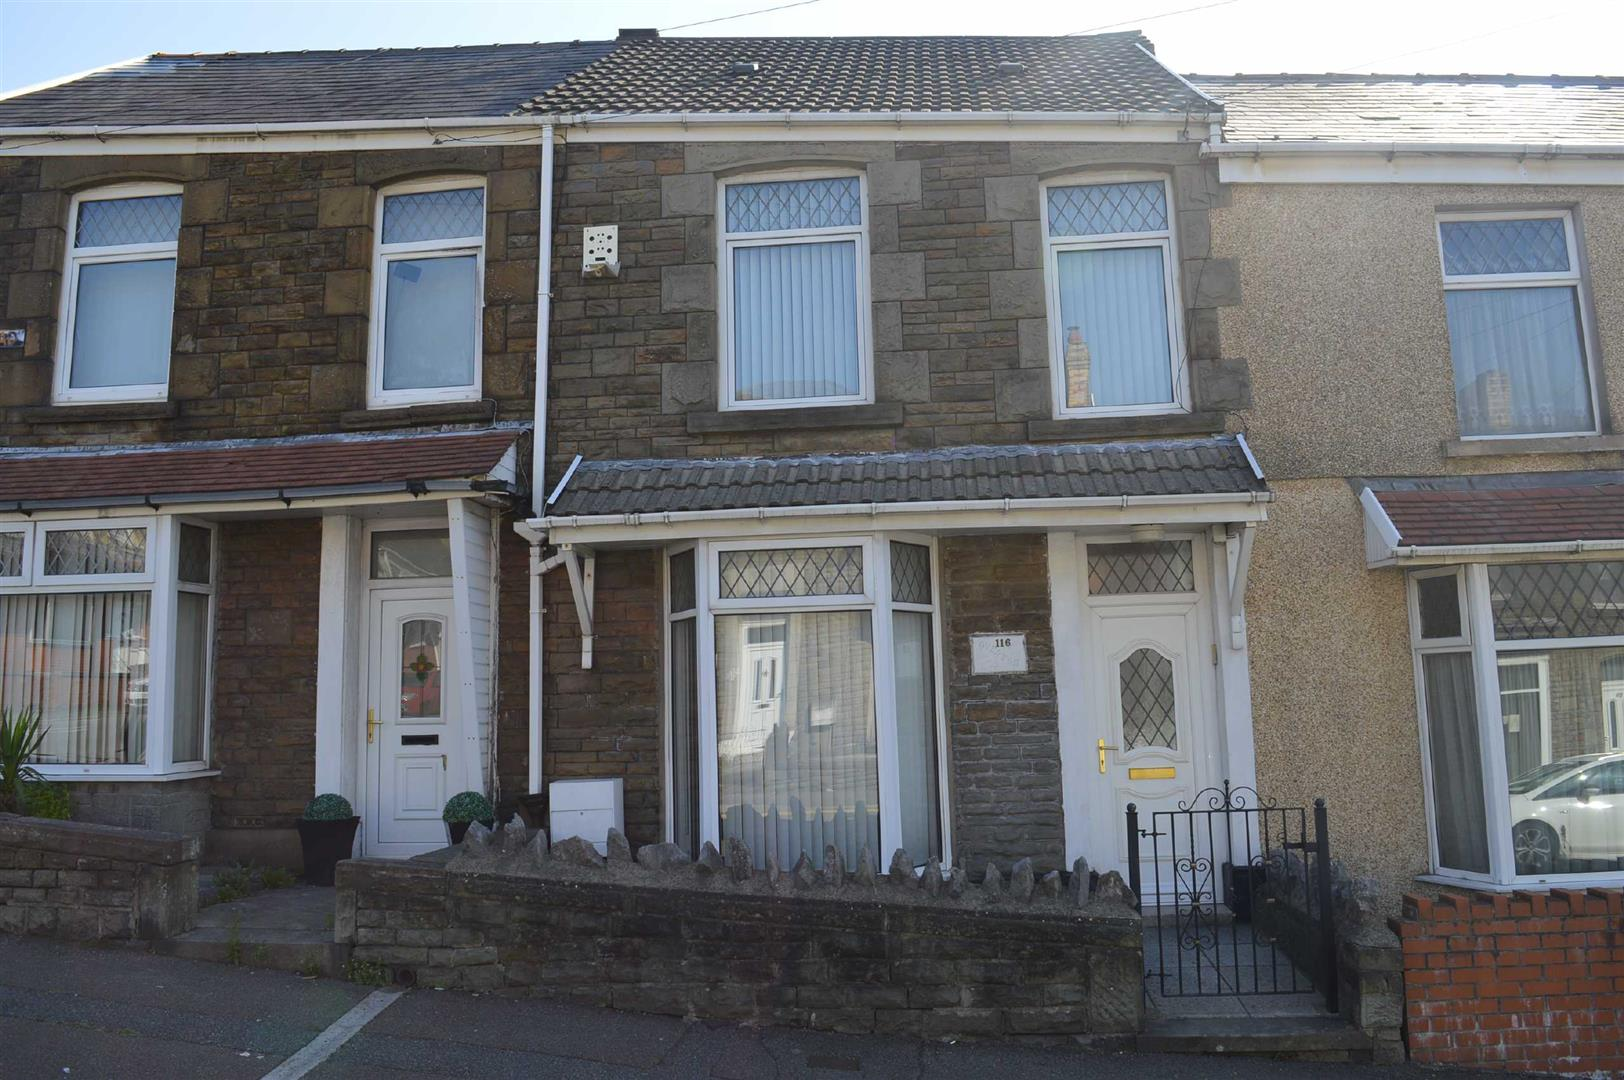 Manor Road, Manselton, Swansea, SA5 9PN